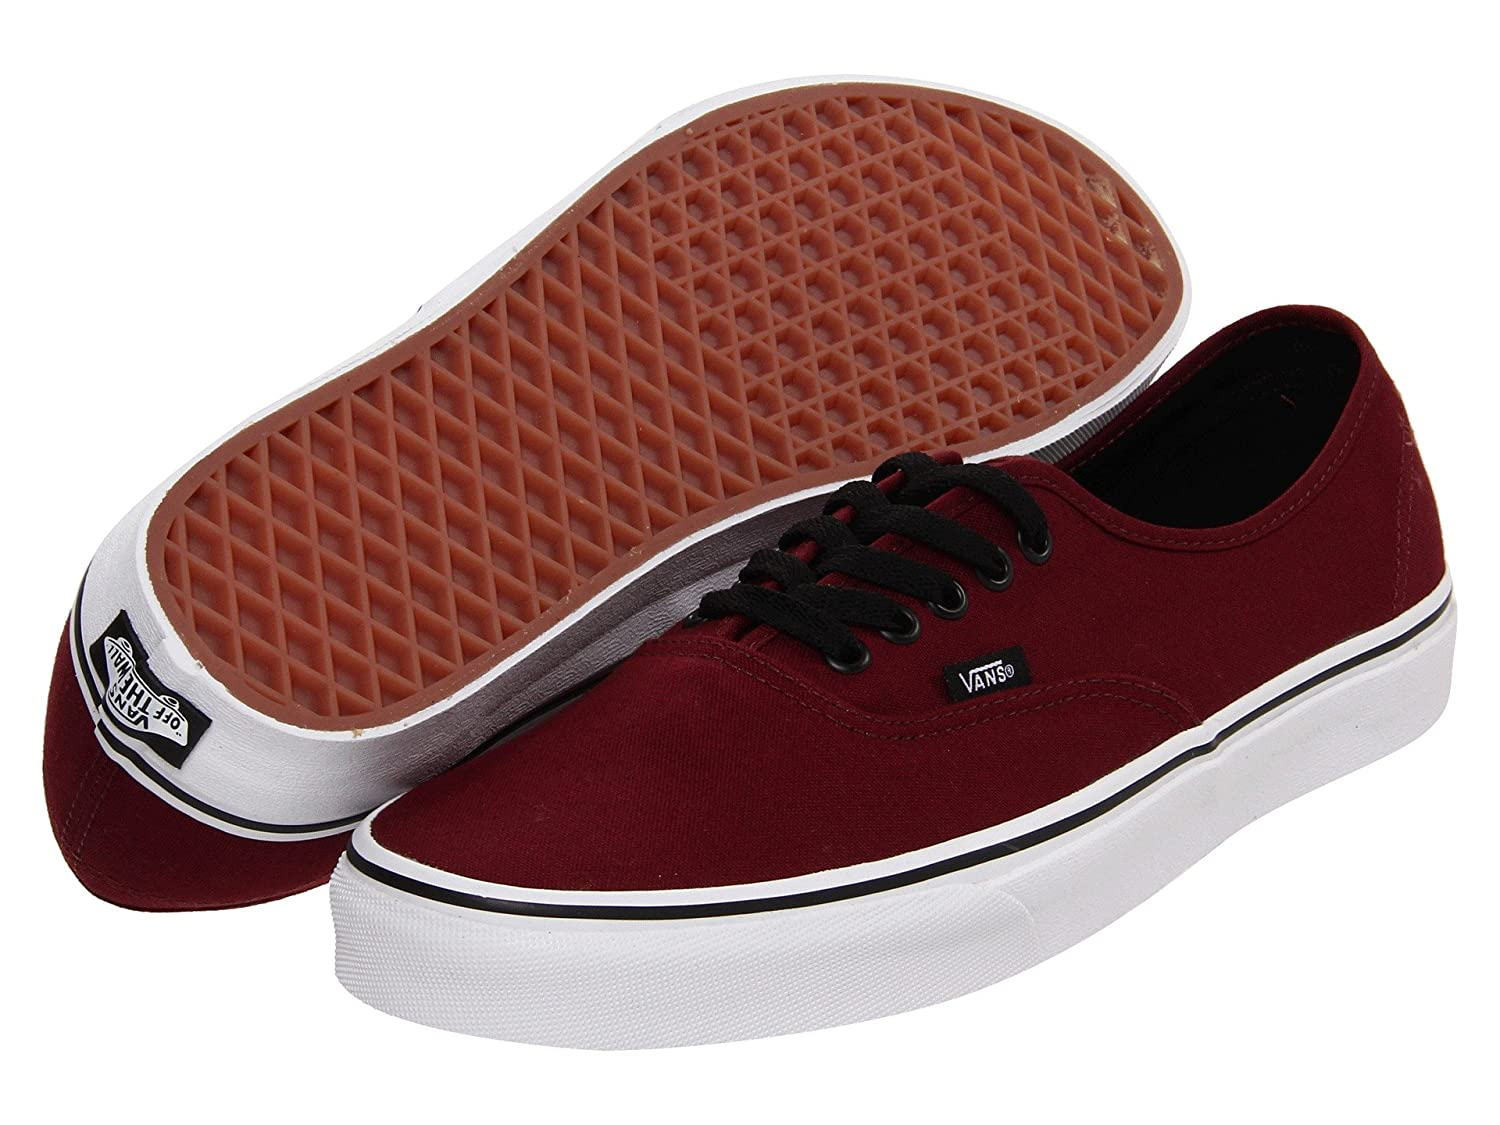 Vans Unisex Authentic Canvas Shoes B0771TMNP1 5 D(M) US|Port Royale/Black